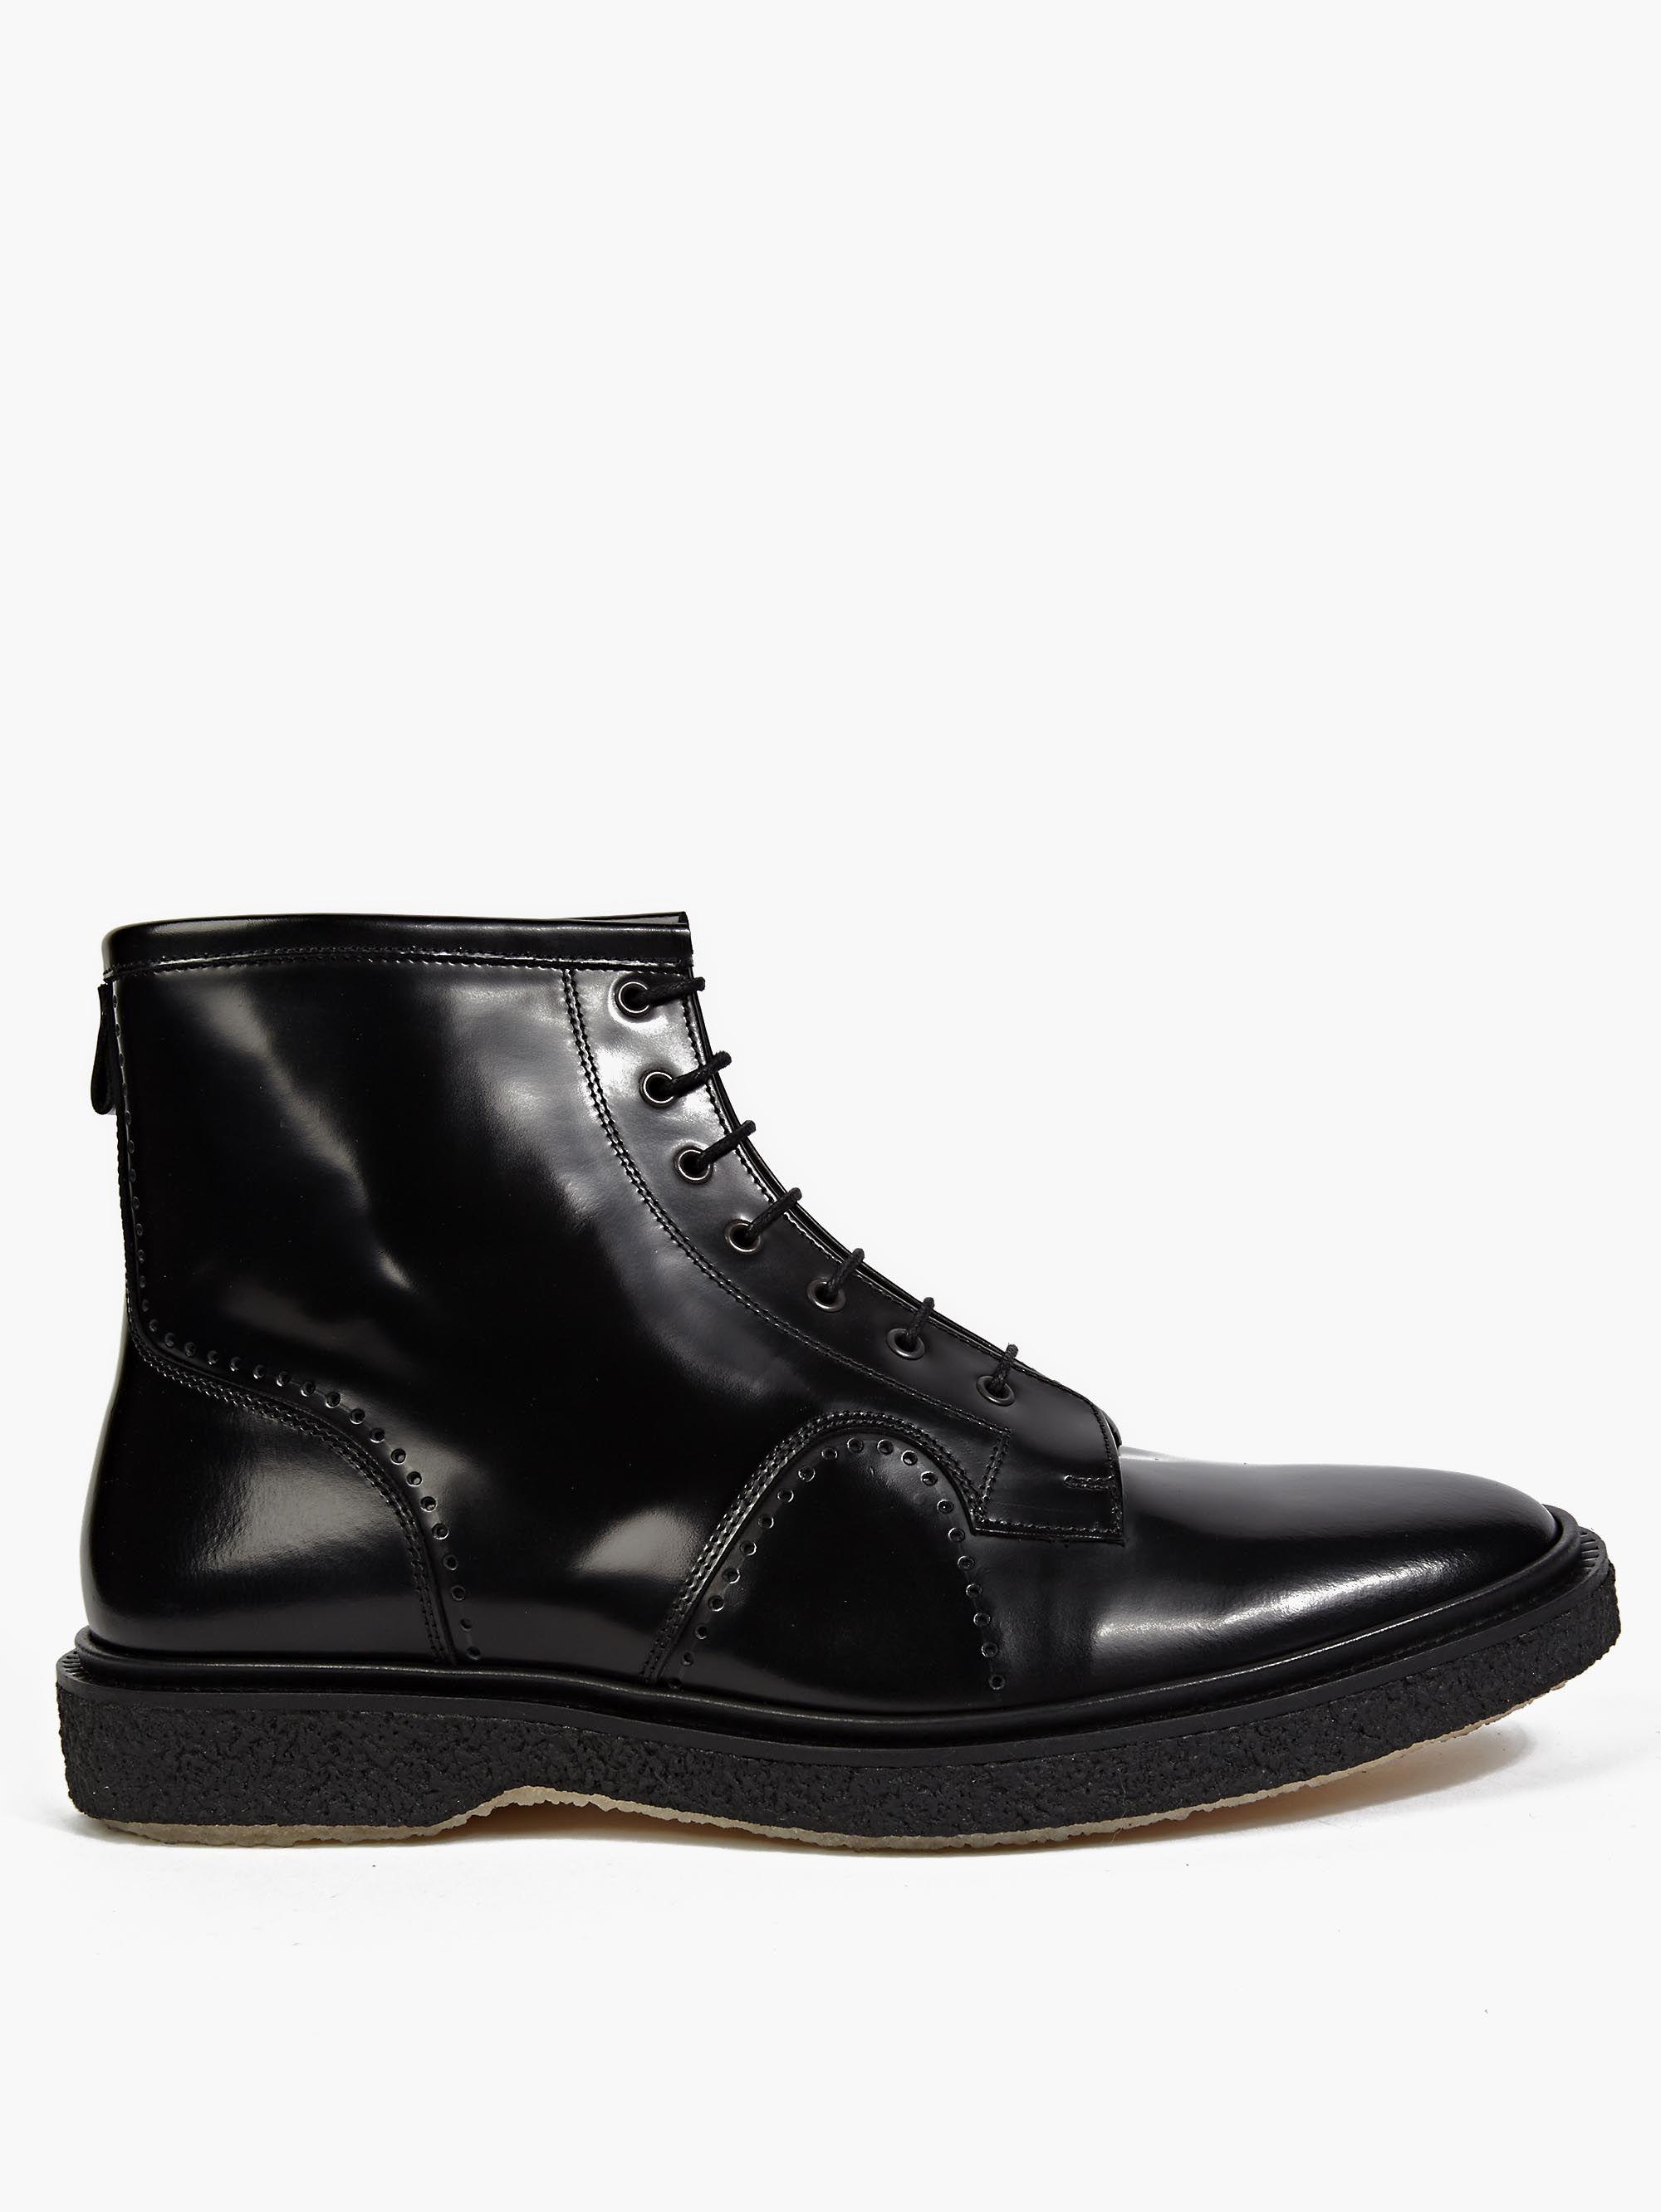 adieu black leather type 22 lace up boots in black for